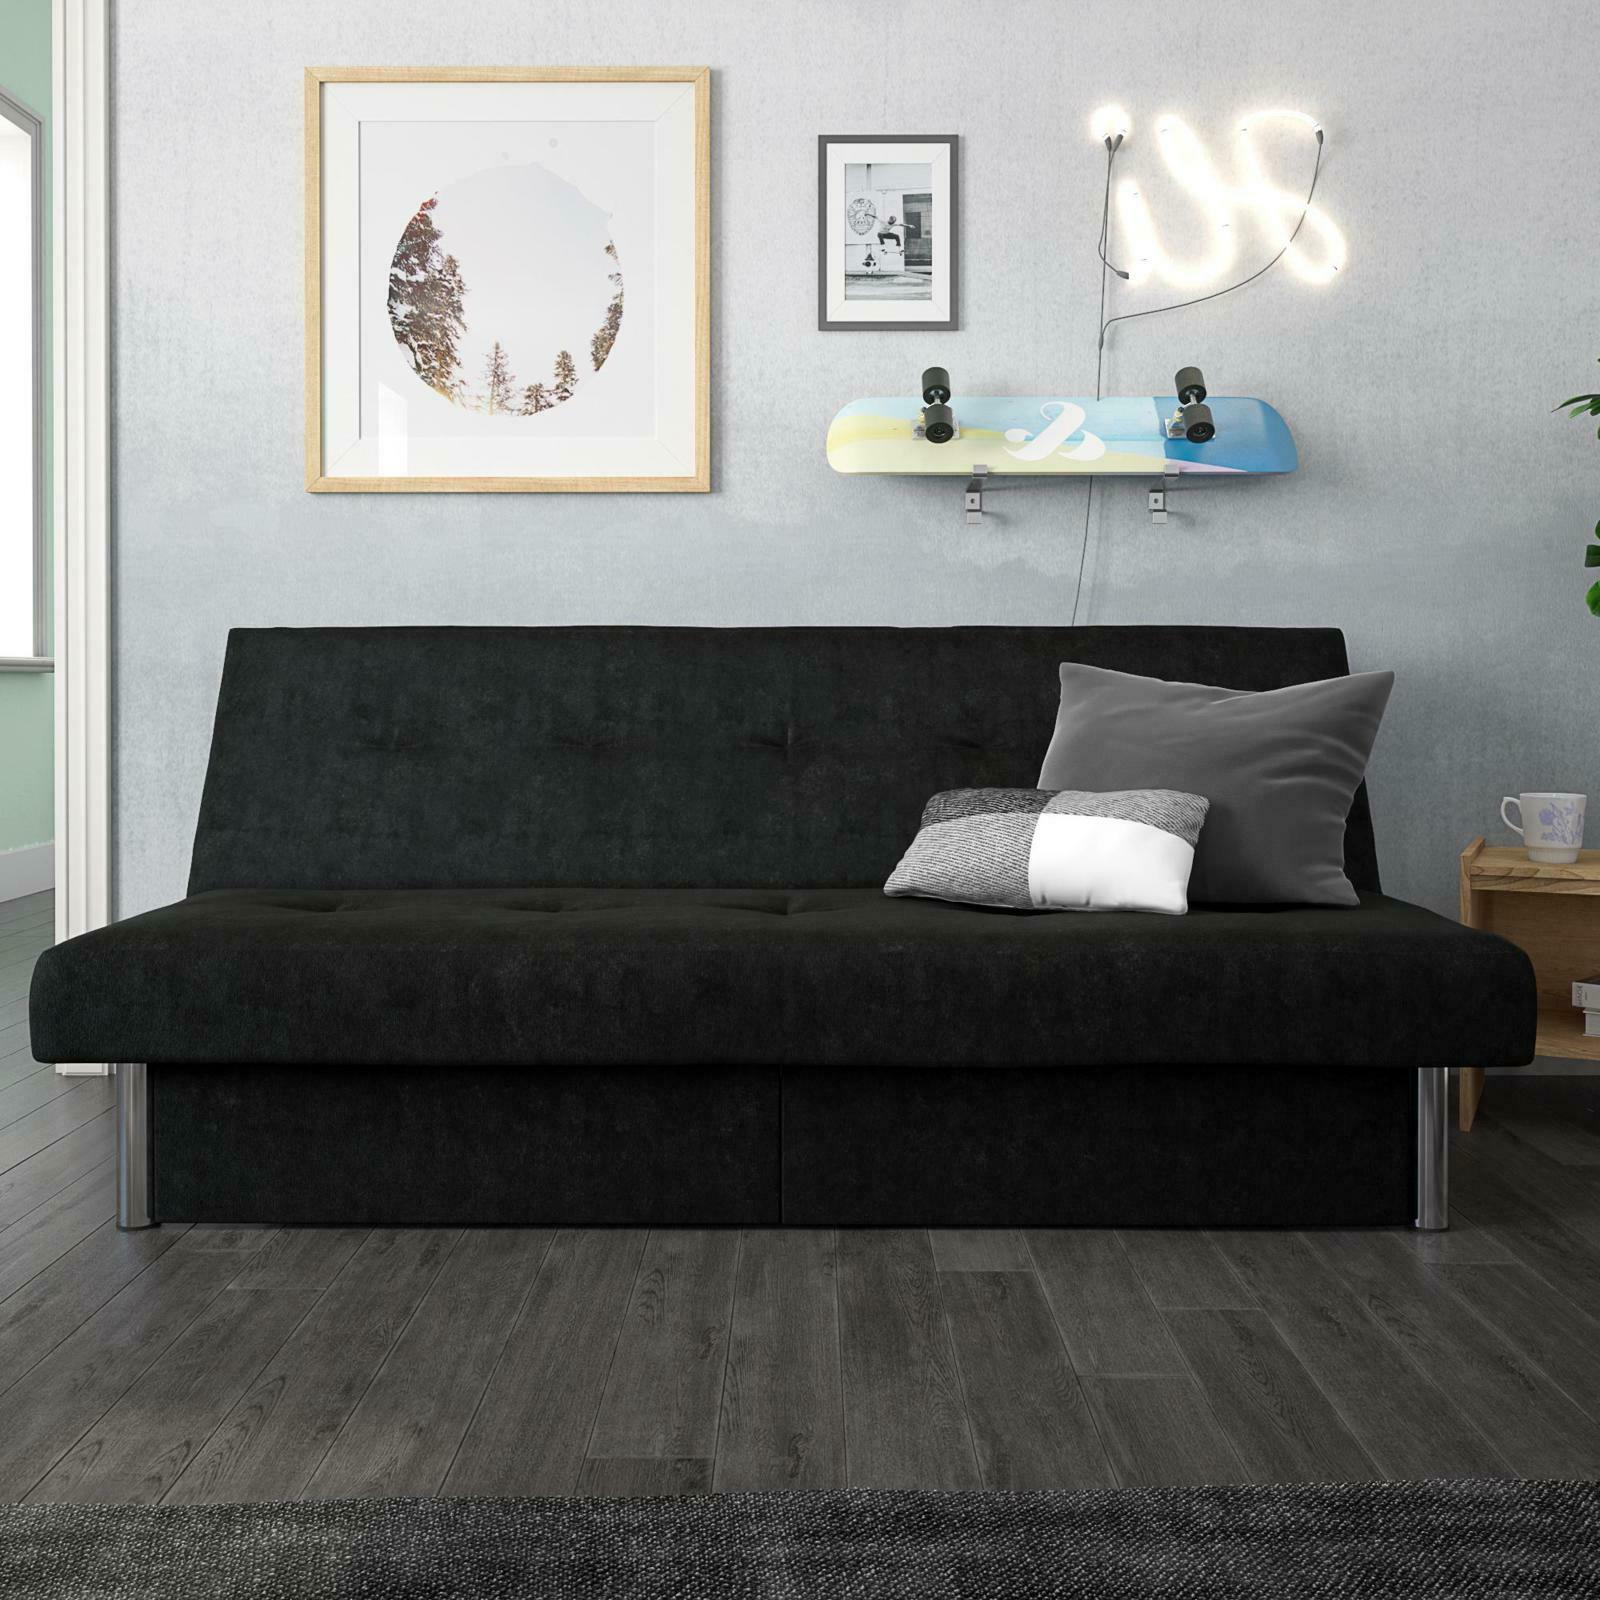 Convertible Couch Sofa Bed Microfiber Room Storage Set